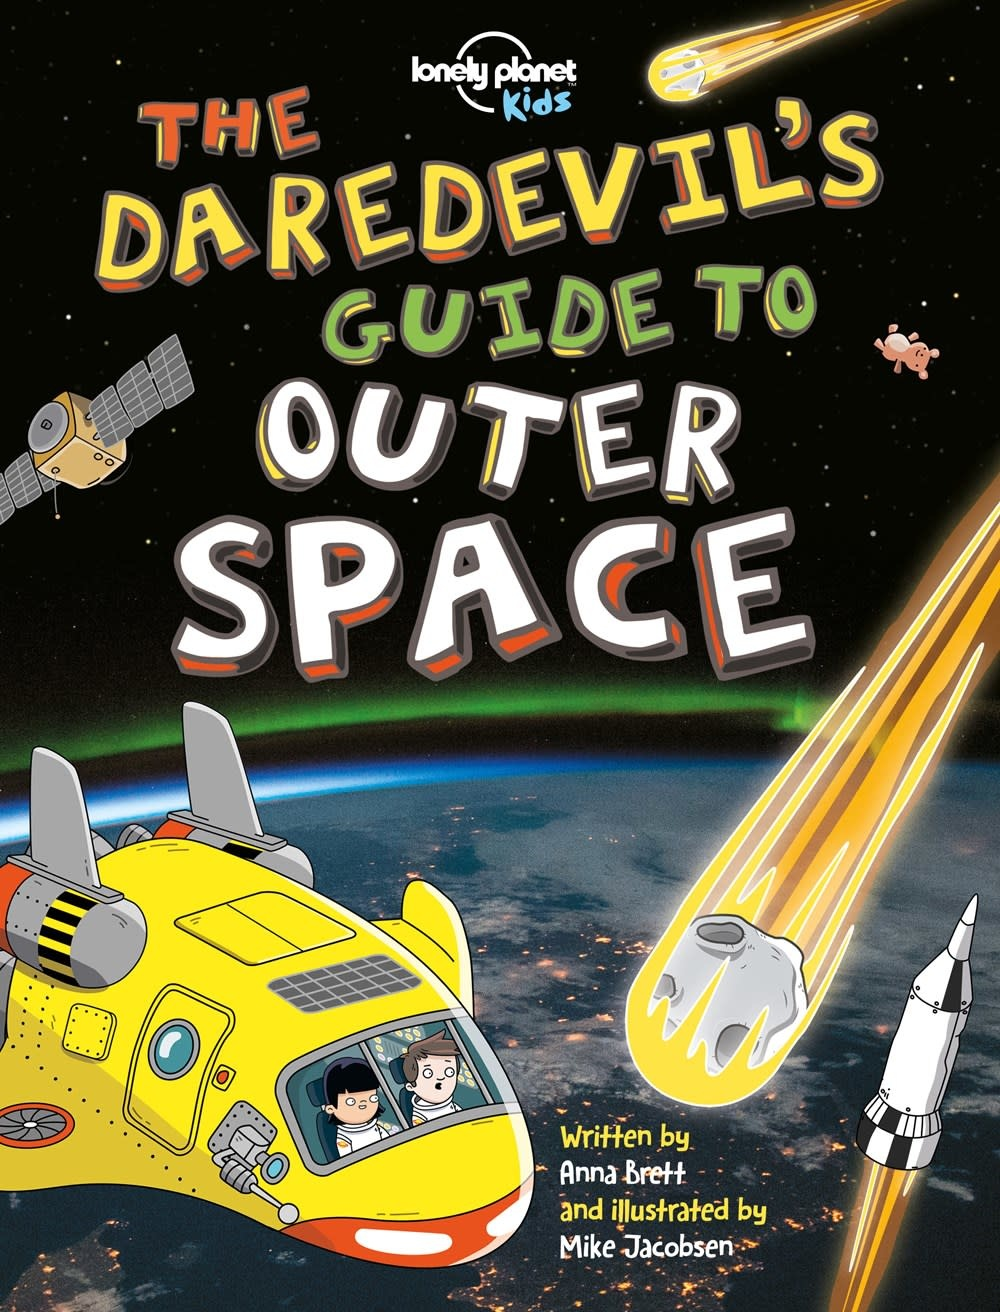 Lonely Planet Kids Lonely Planet Kids: The Daredevil's Guide to Outer Space